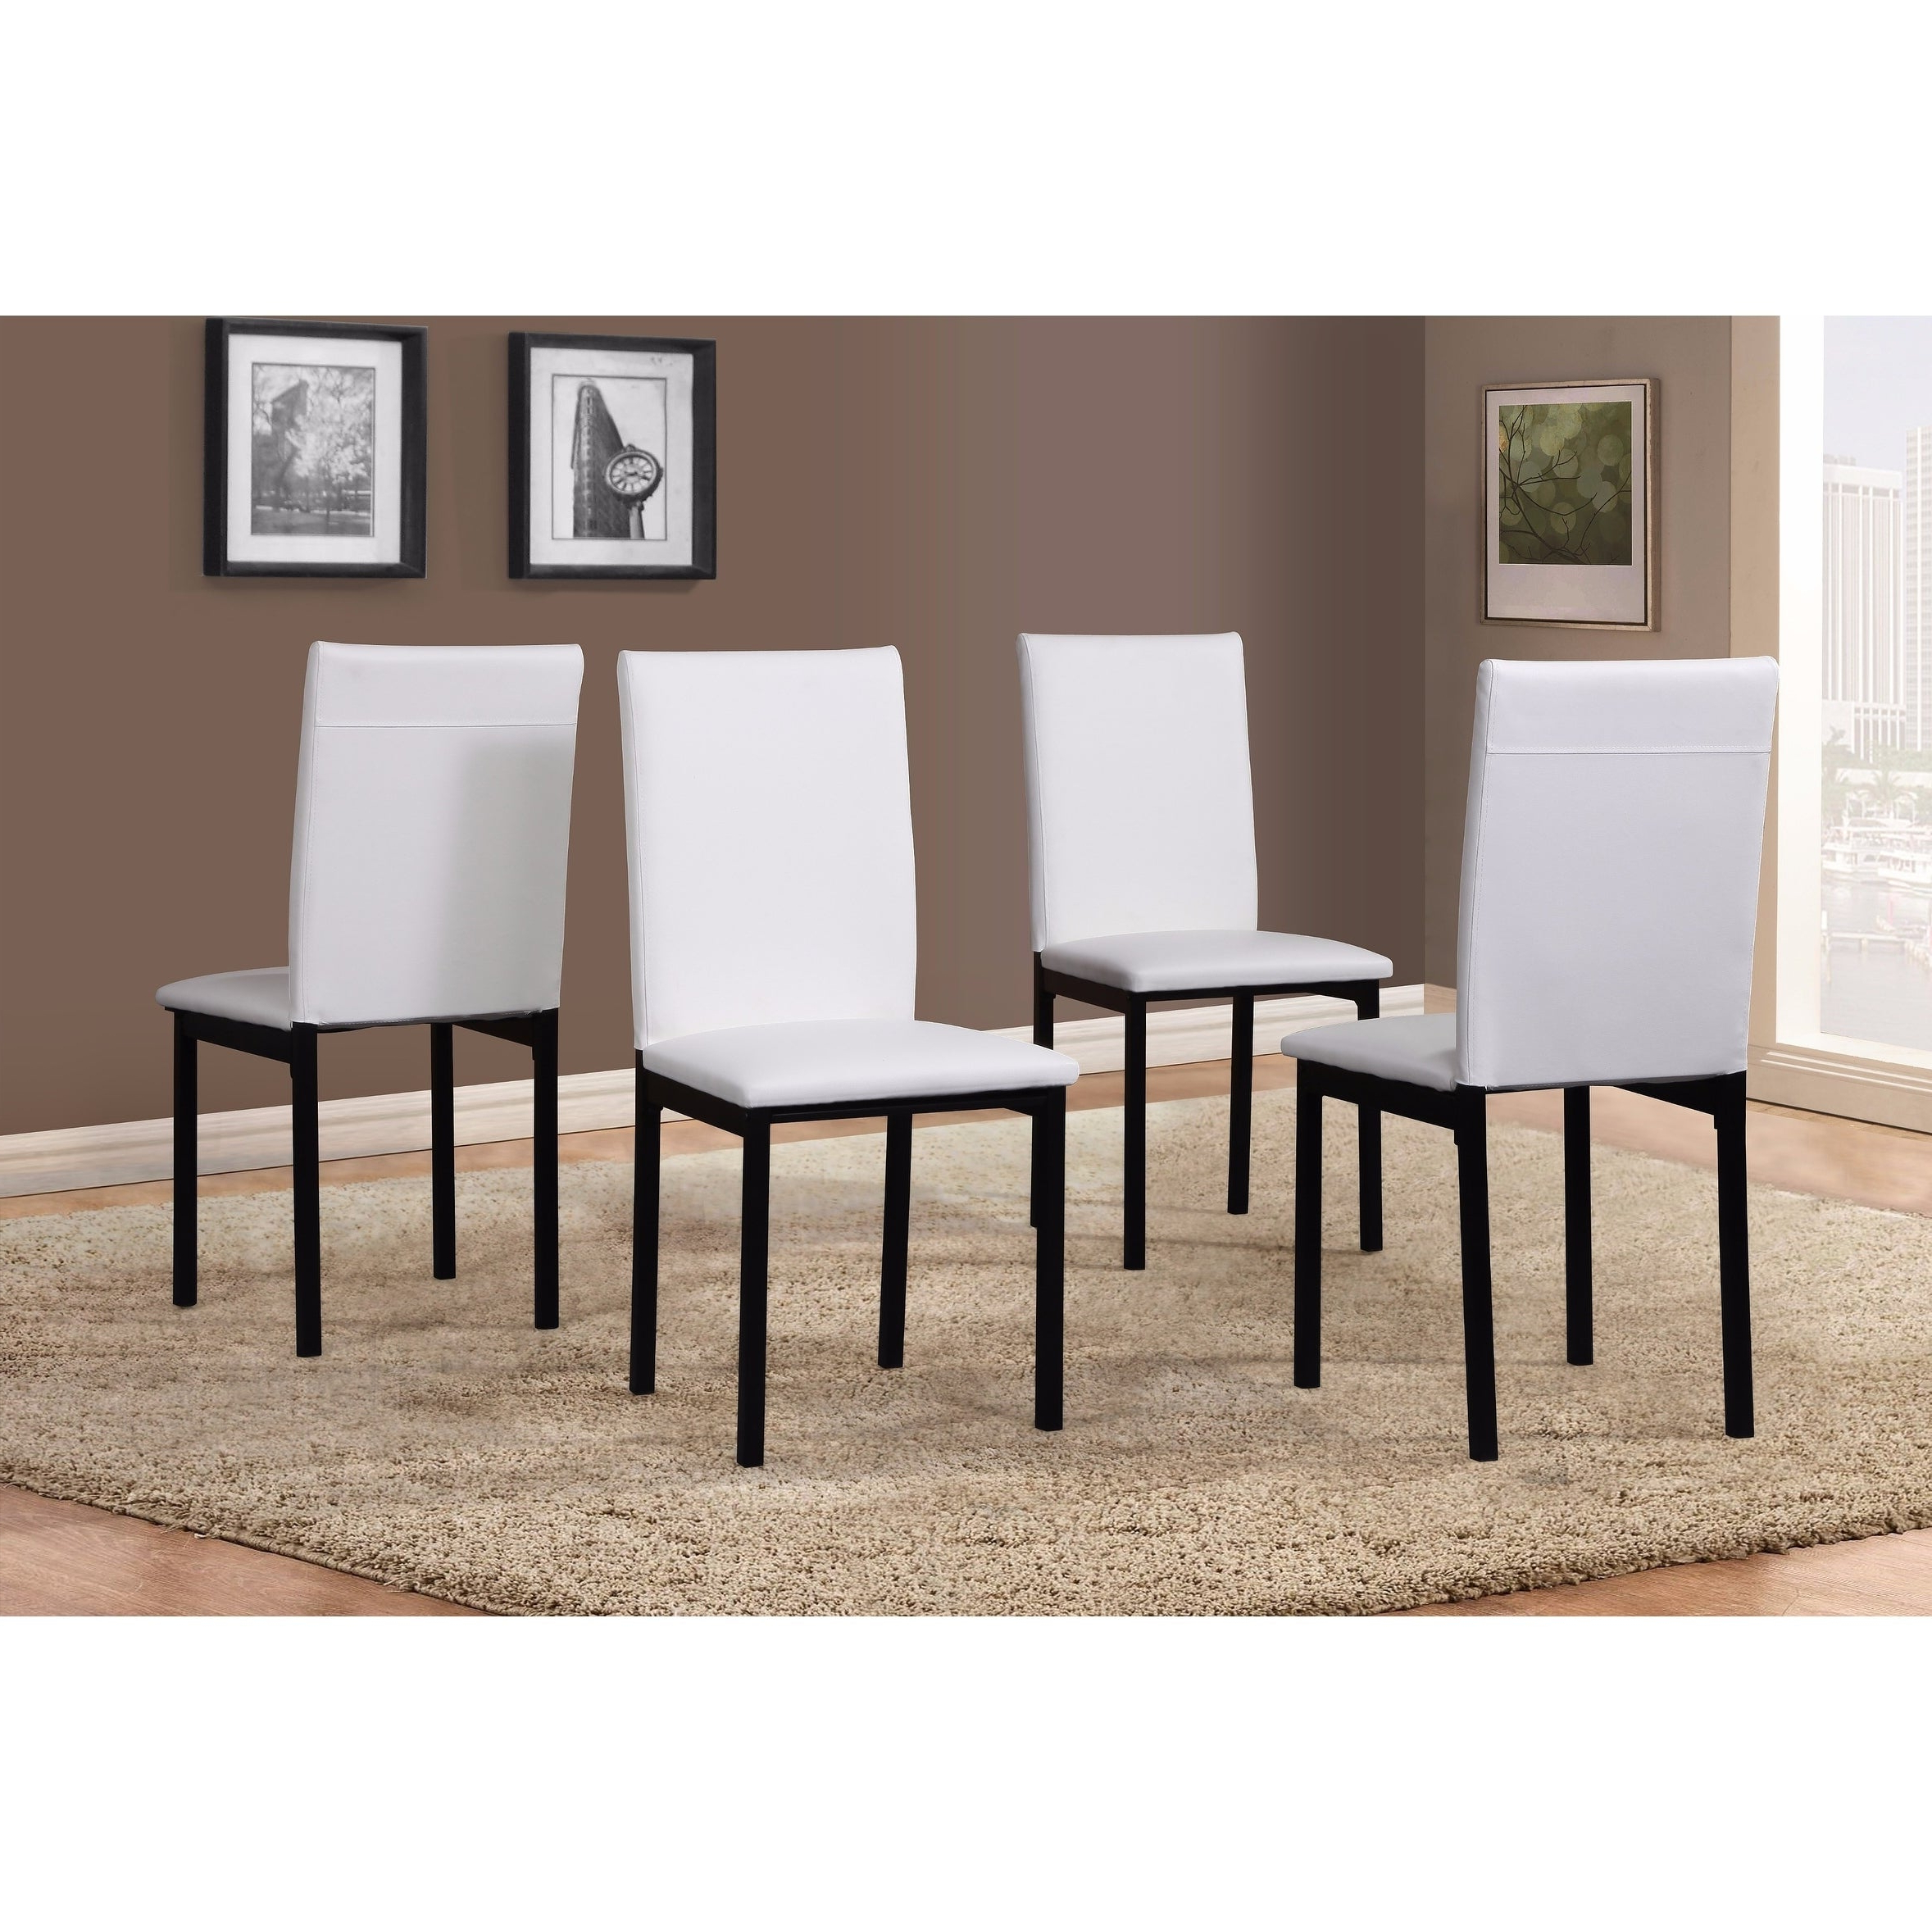 Noyes 5 Piece Dining Sets Intended For 2018 Noyes Faux Leather Seat Metal Frame Black Dining Chairs, Set Of 4 (Gallery 12 of 20)